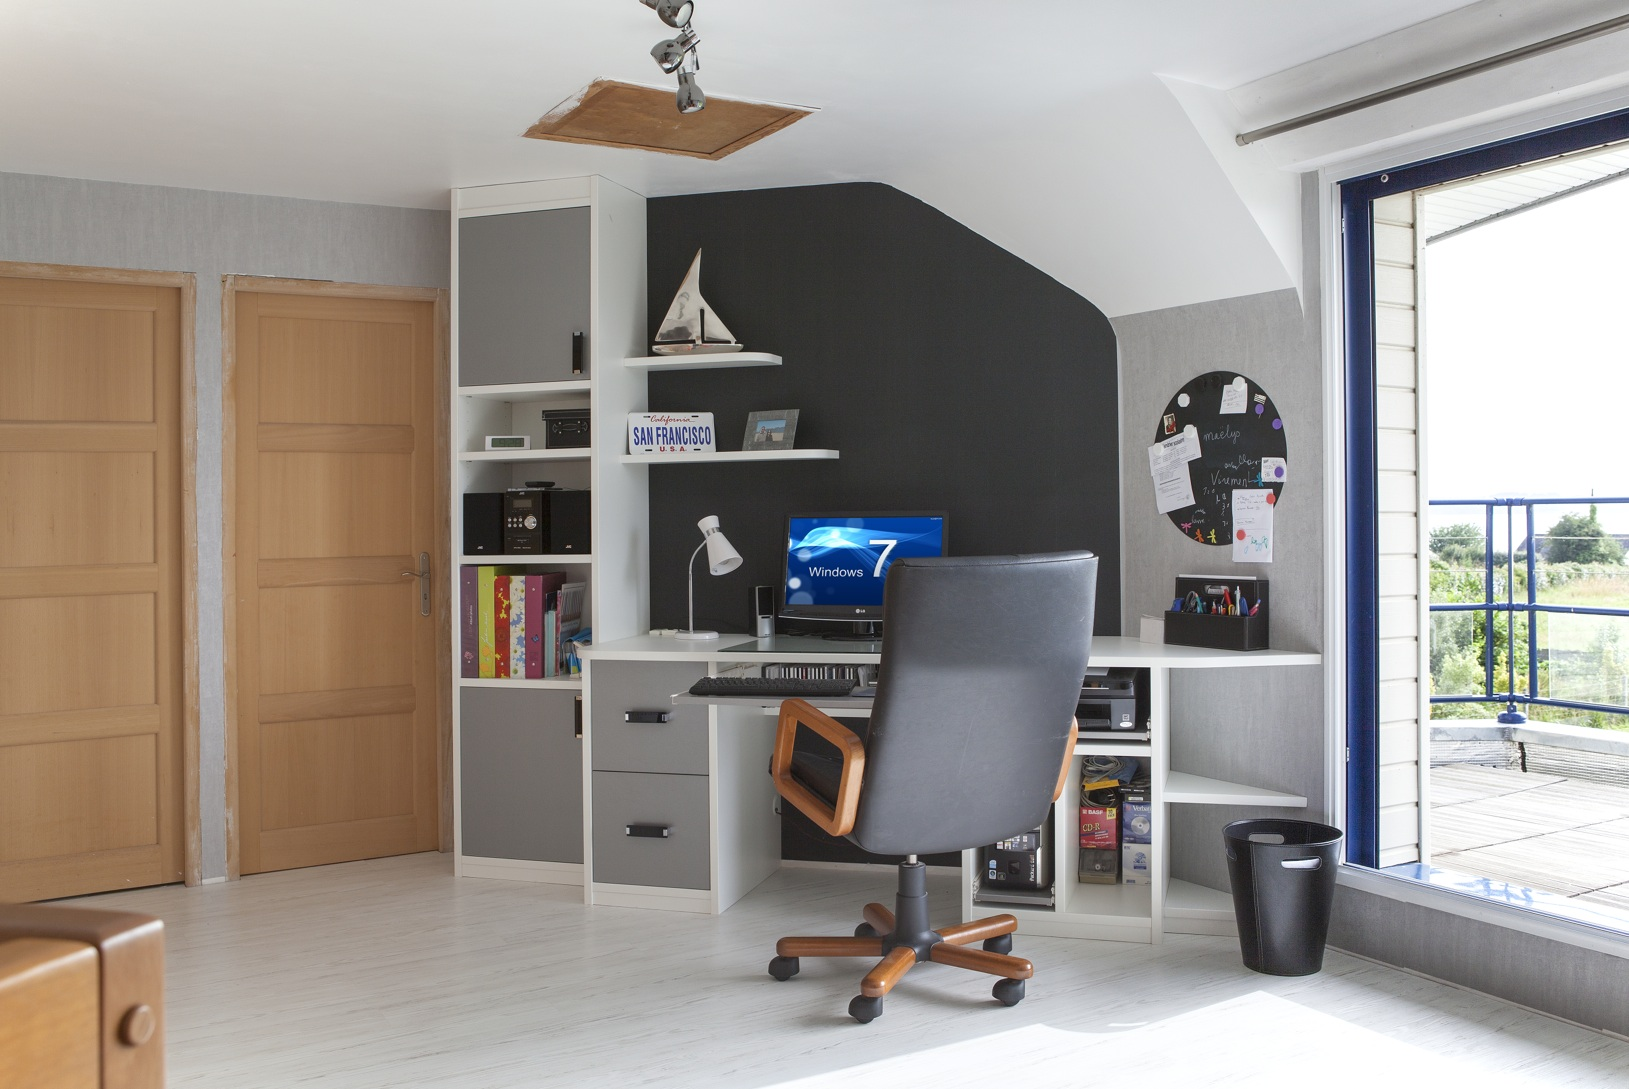 bureau sur mesure j ai un bureau sur mesure bien tudi cr ez votre espace de travail avec les. Black Bedroom Furniture Sets. Home Design Ideas